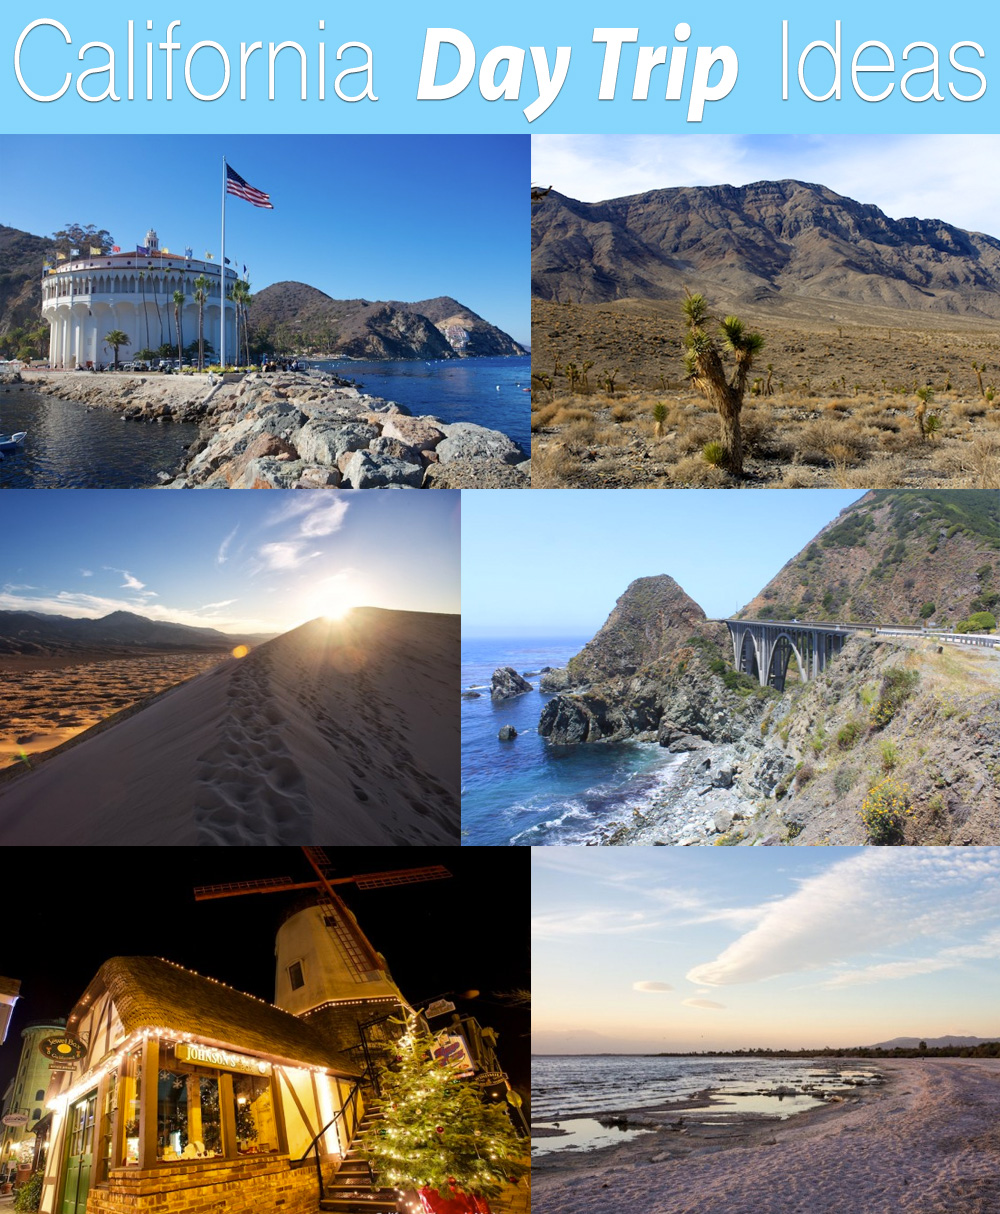 Day trip ideas in california california through my lens for Vacation ideas in california